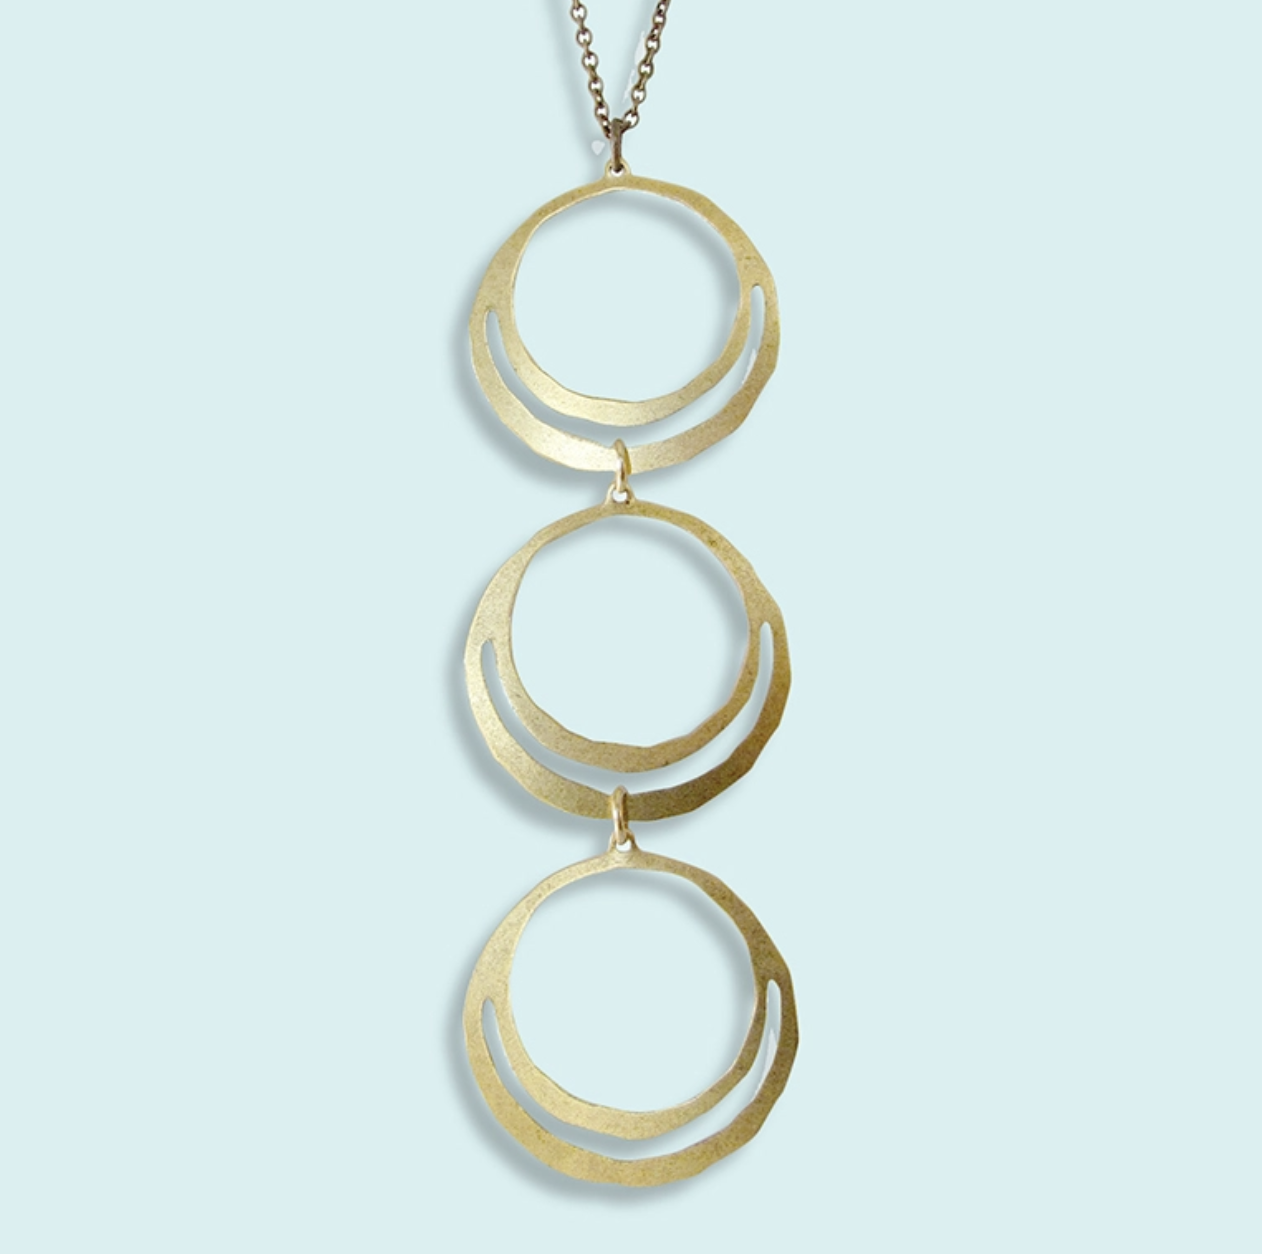 Ornamental Things 3 Brass Rings Necklace